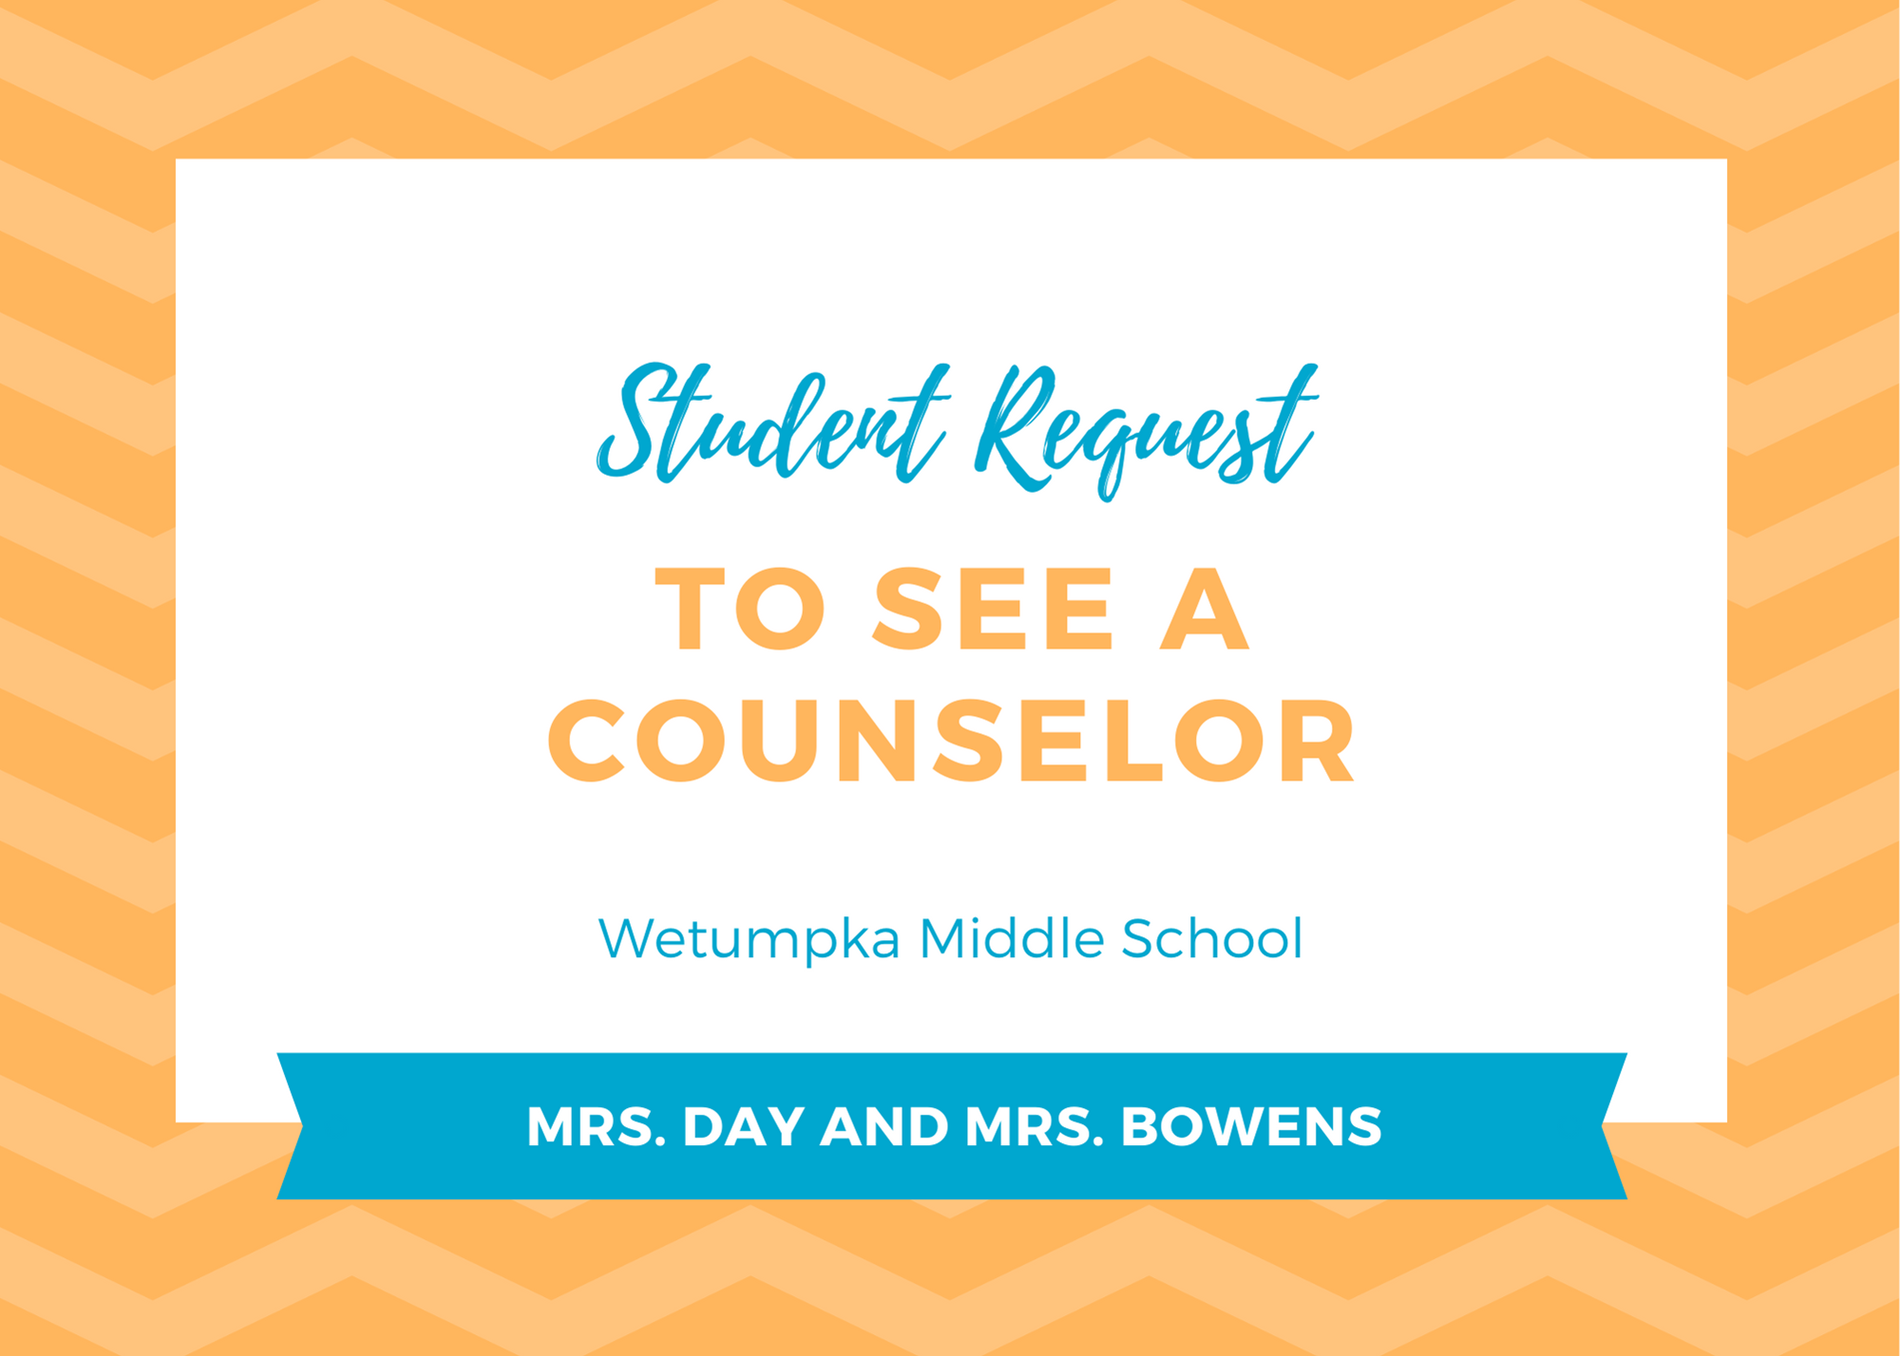 Request to See a Counselor